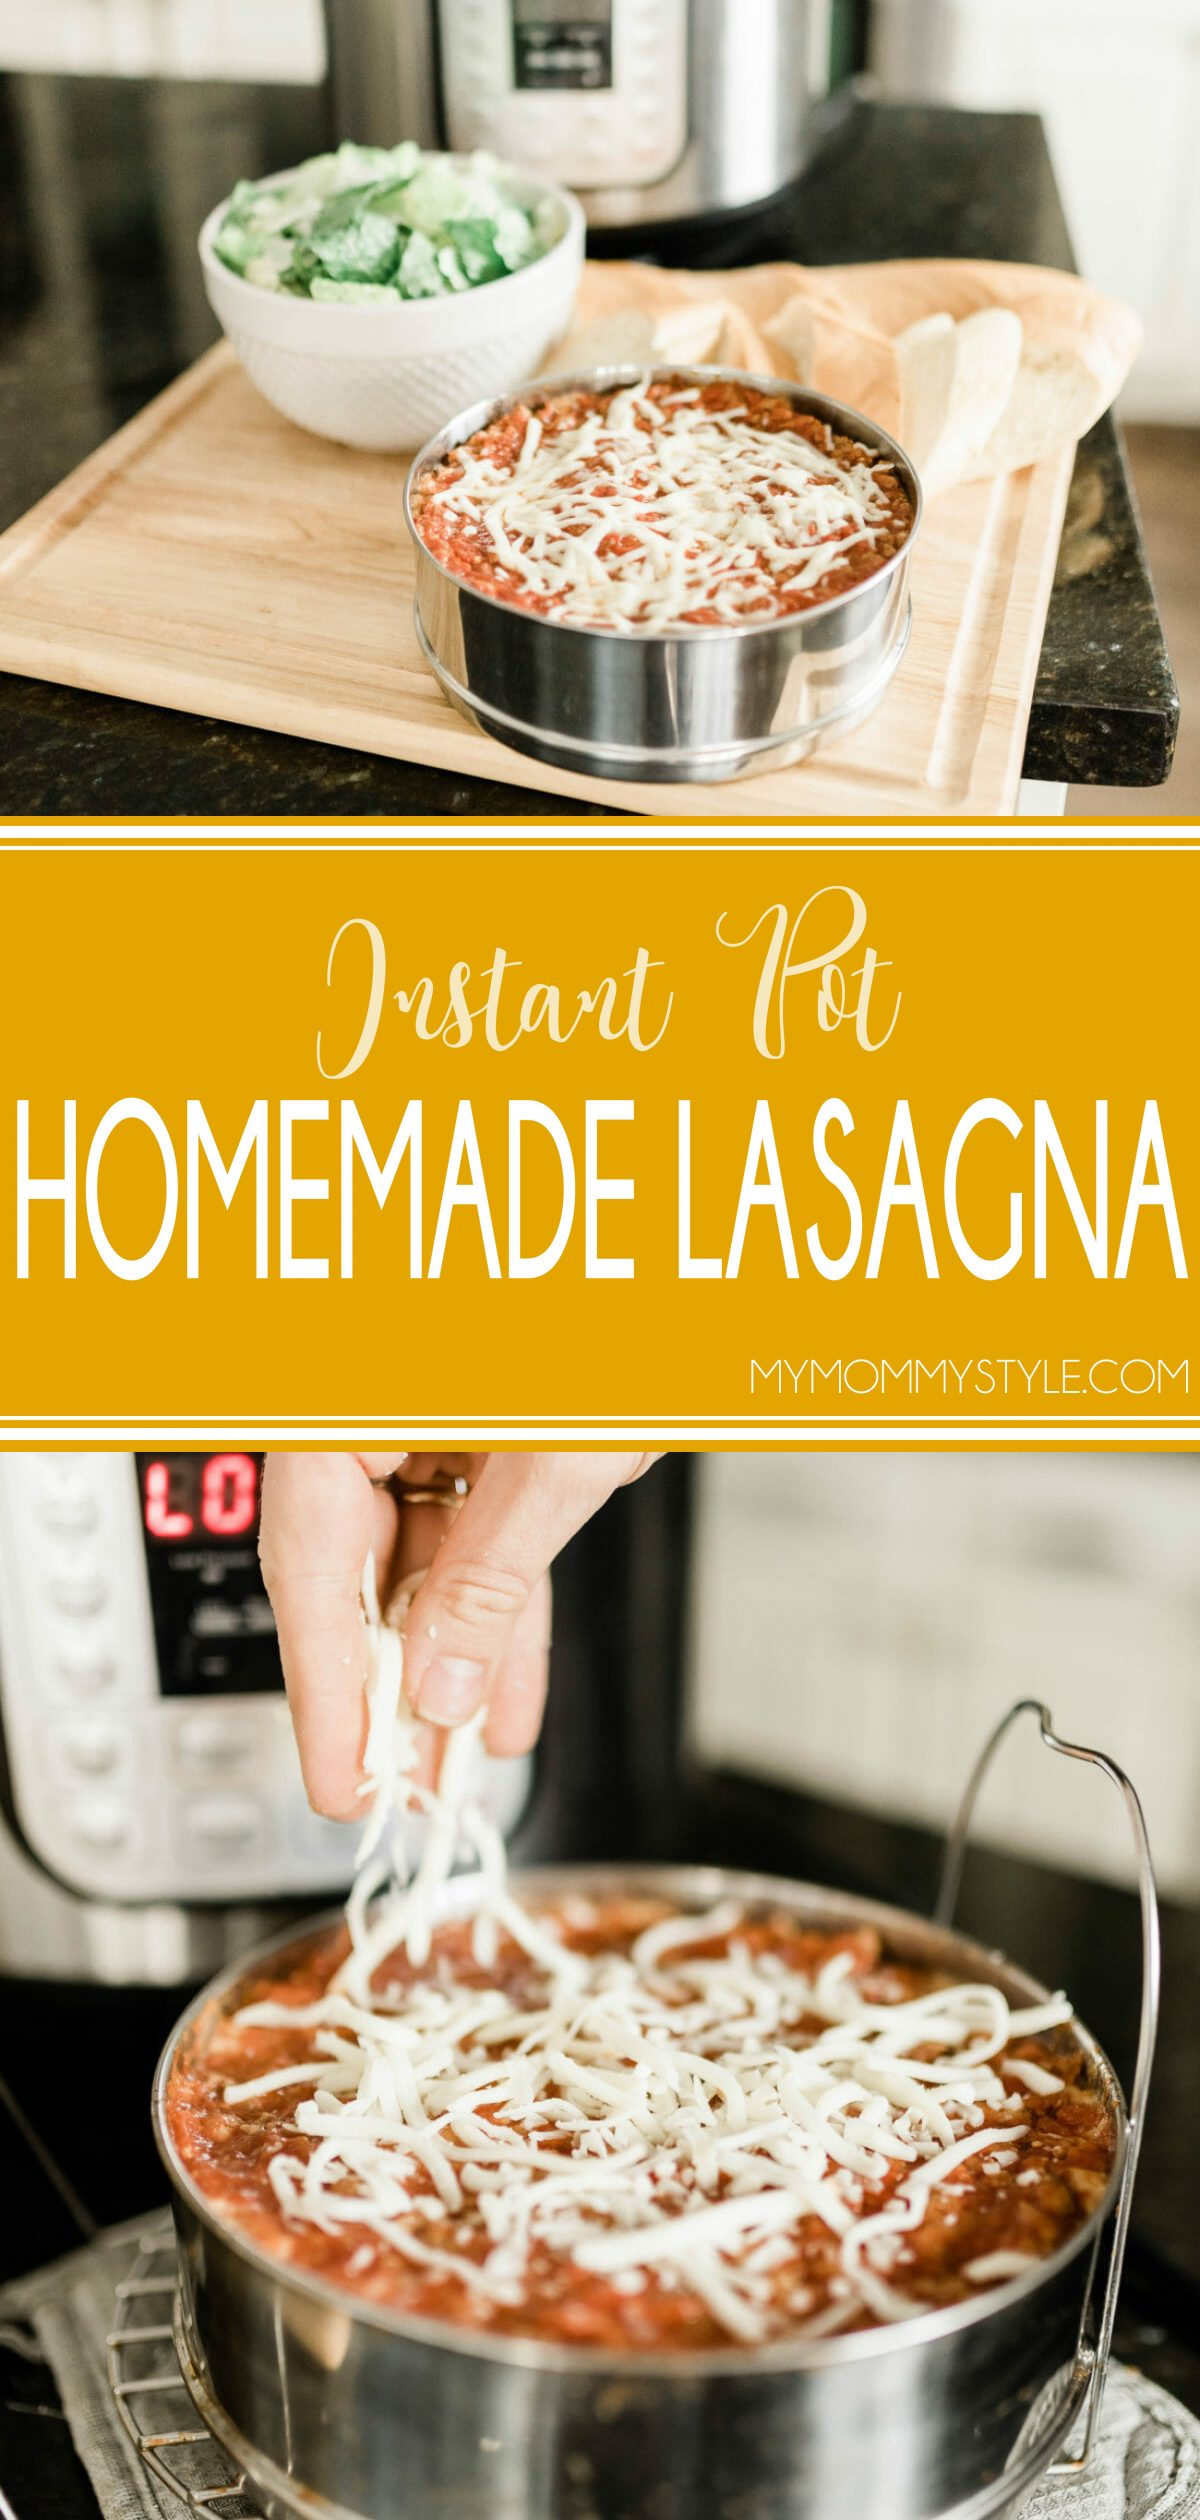 Lasagna can easily become a weeknight meal with this Instant Pot Lasagna recipe! All the comfort of a cheesy, delicious lasagna without all the stress and time of a traditional lasagna recipe! This instant pot recipe is done in under a half an hour! via @mymommystyle